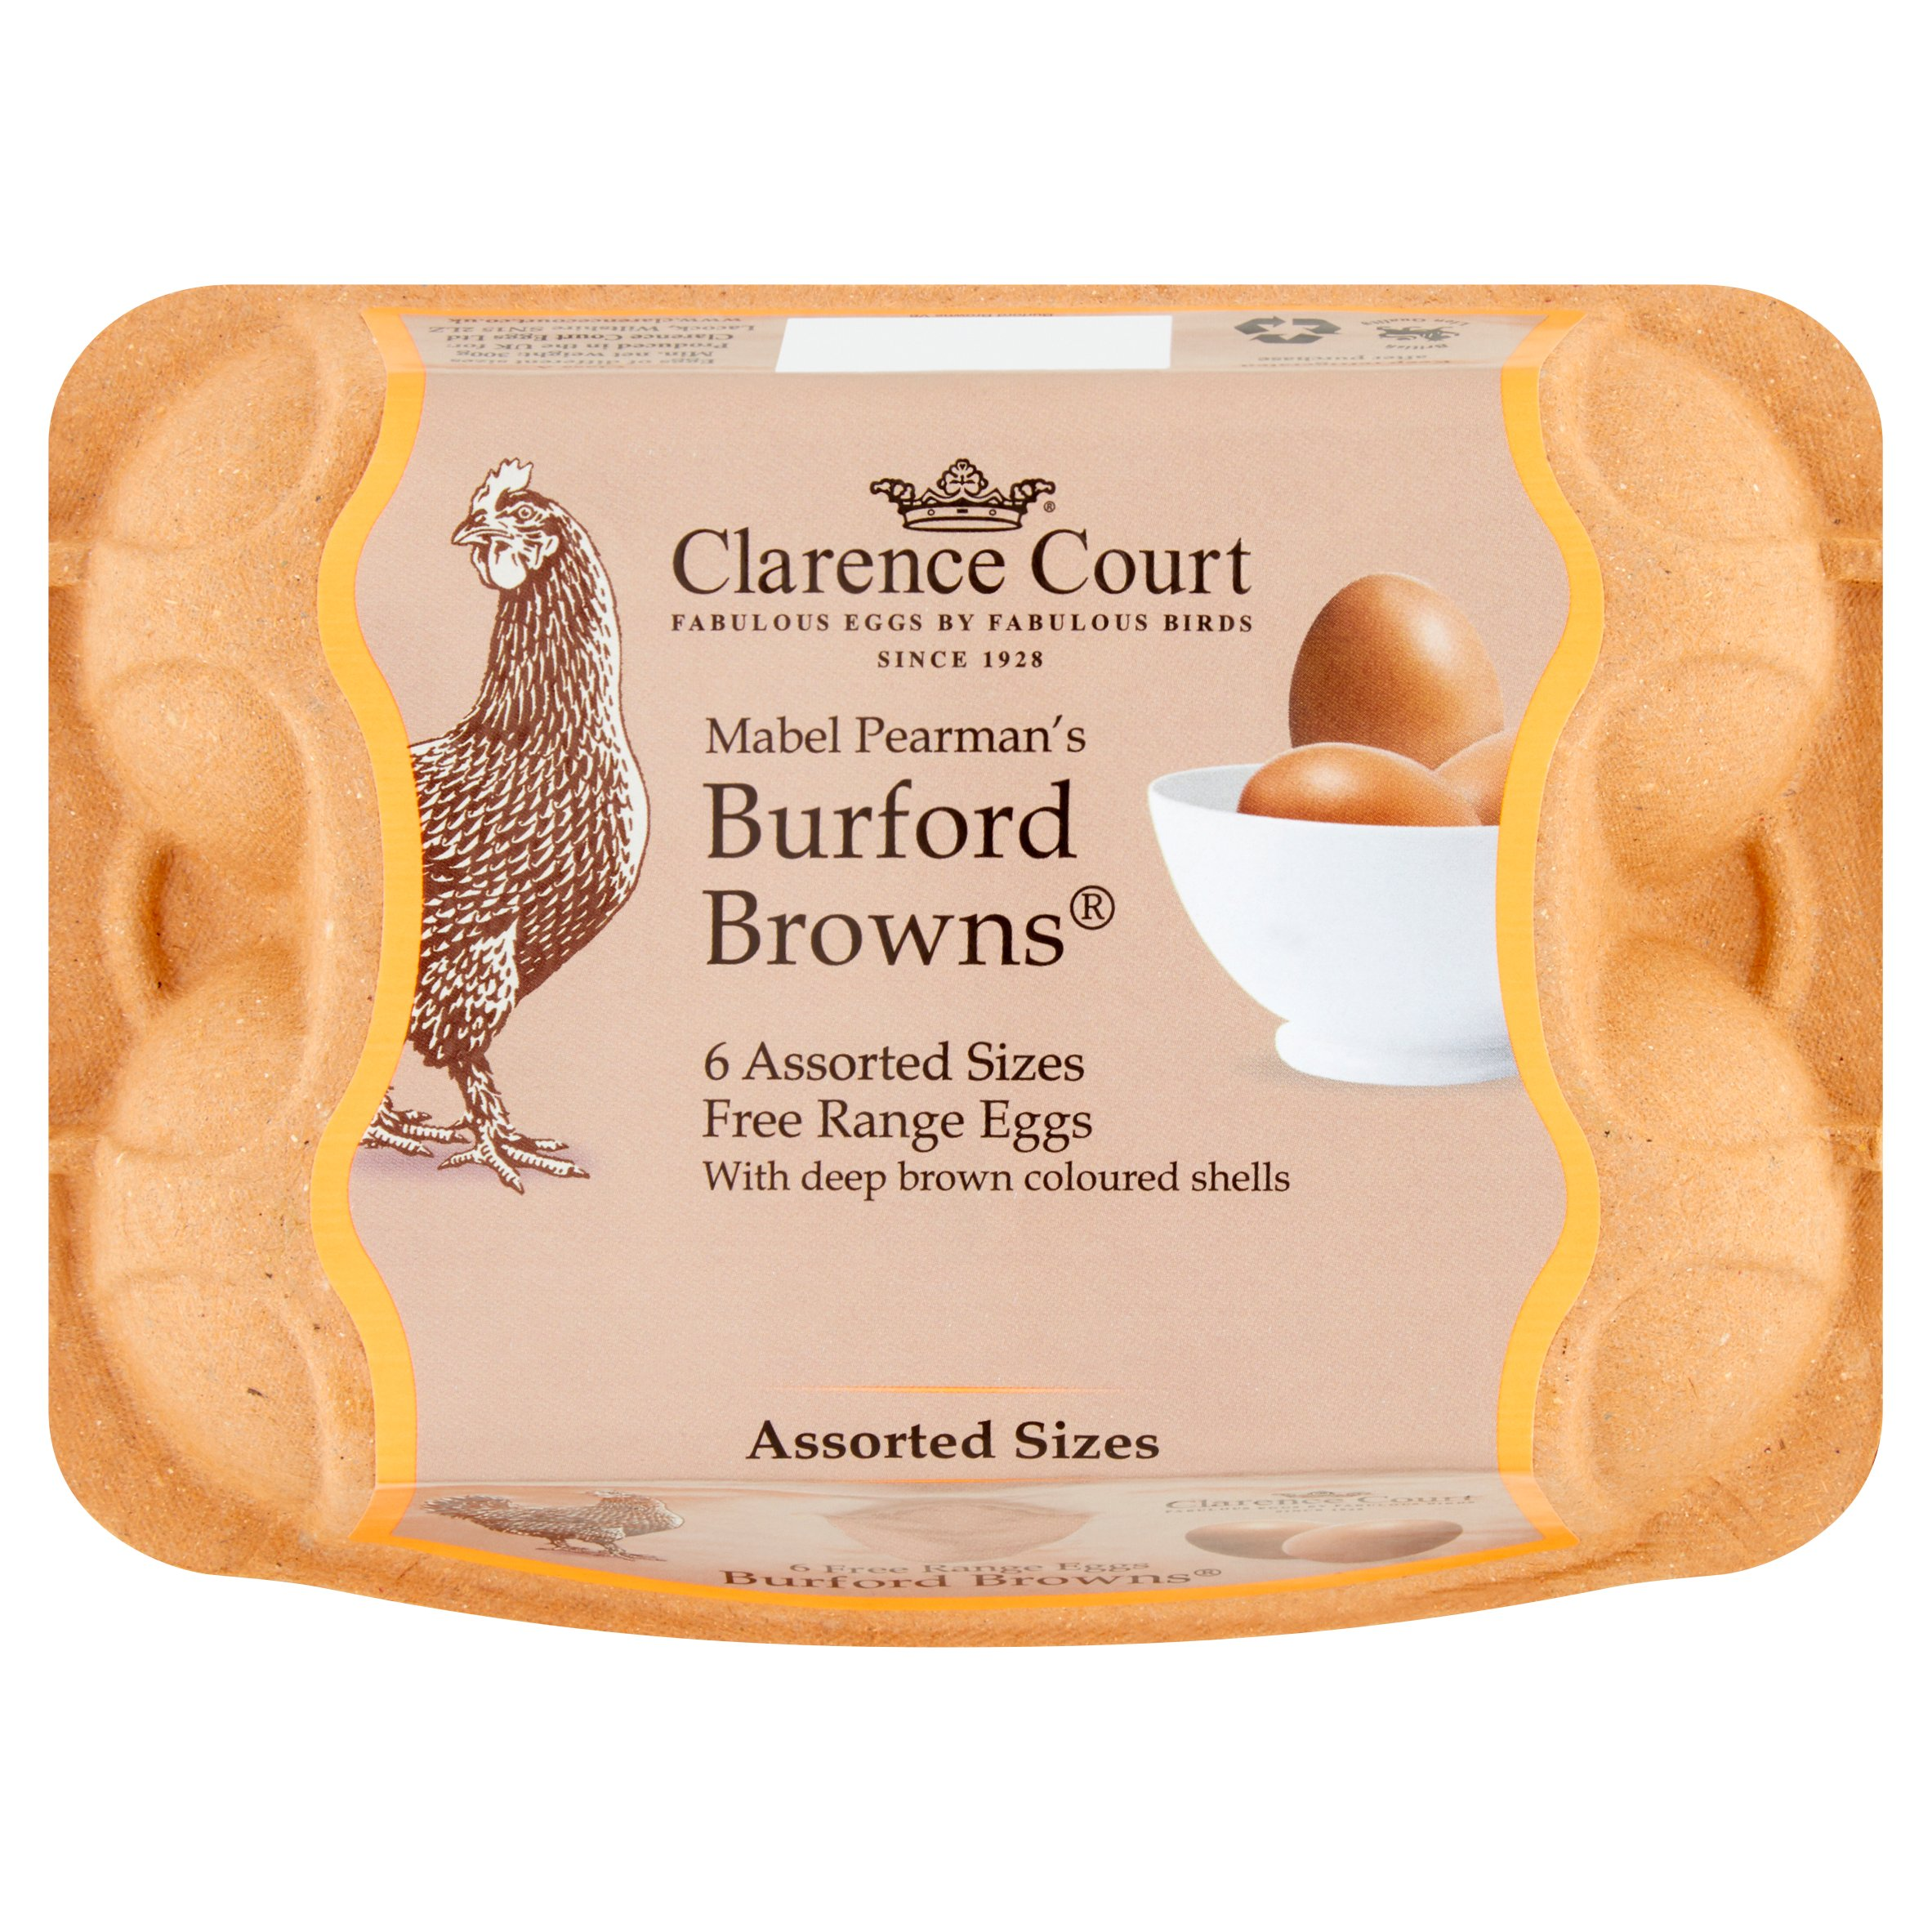 Clarence Court Burford Browns Free Range Eggs 6 Pack